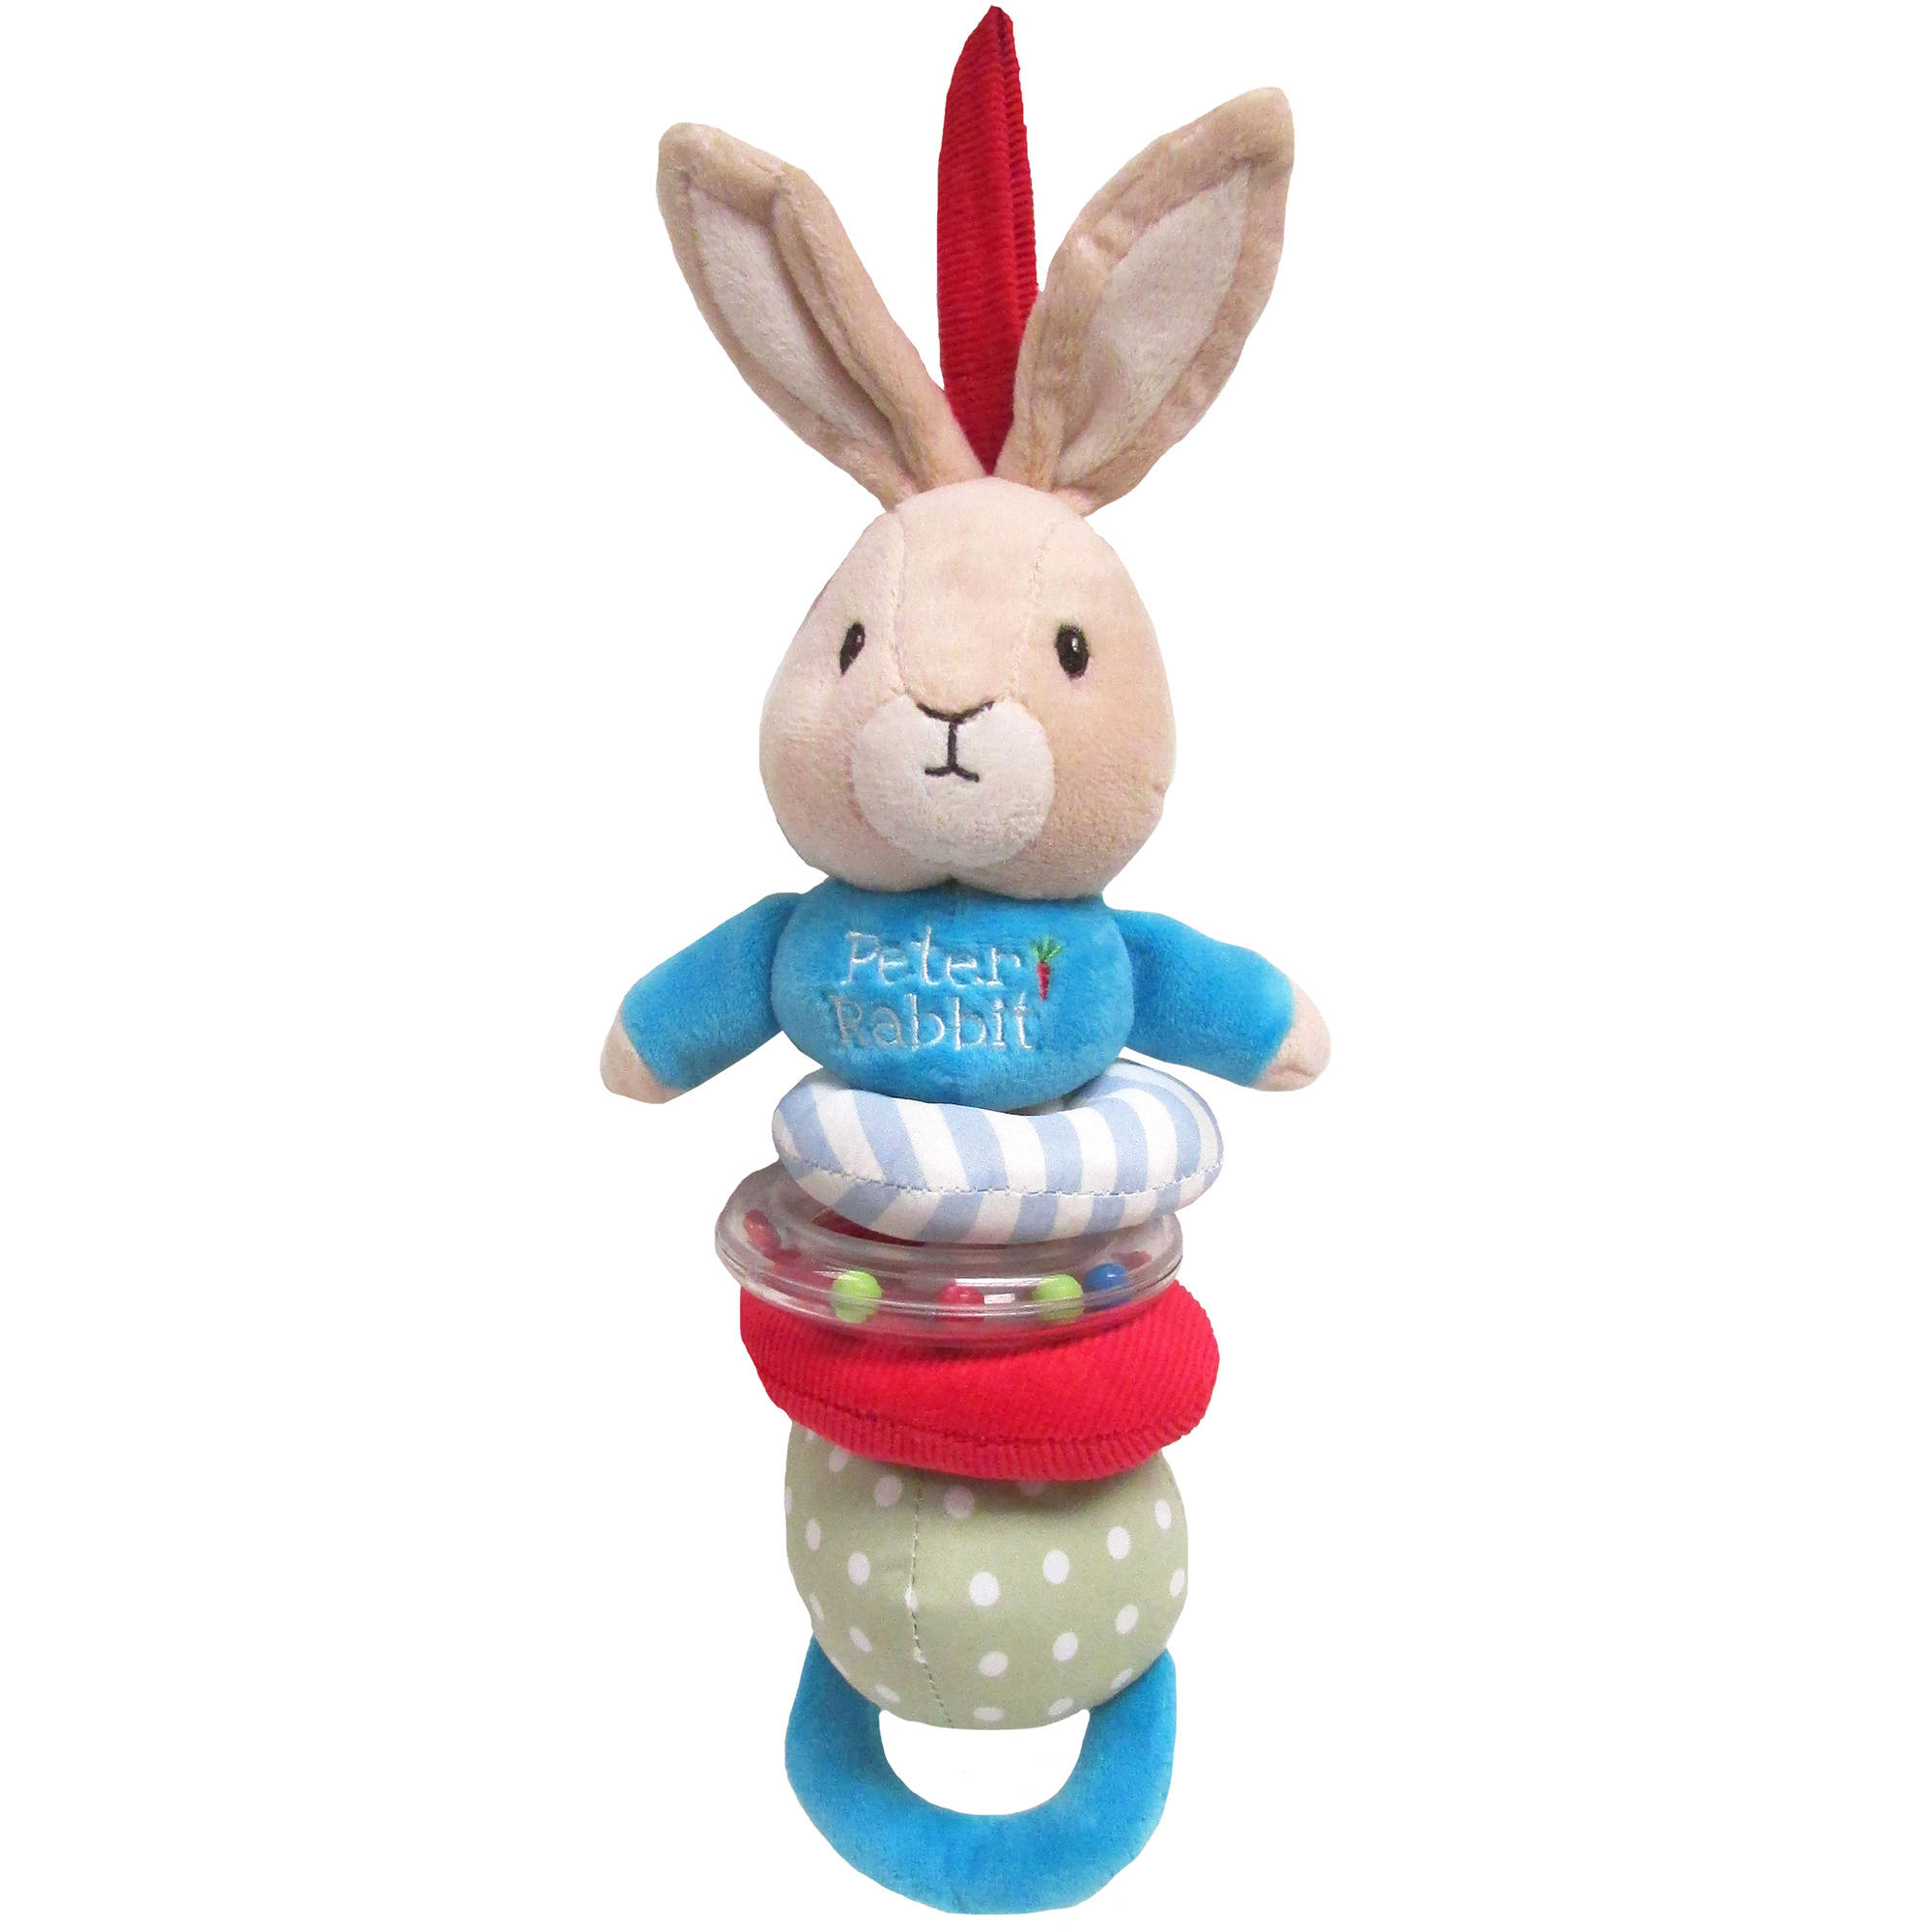 Flopsy Bunny Soft Bean Toy with Jingle Rattle Peter Rabbit Nursery Collection